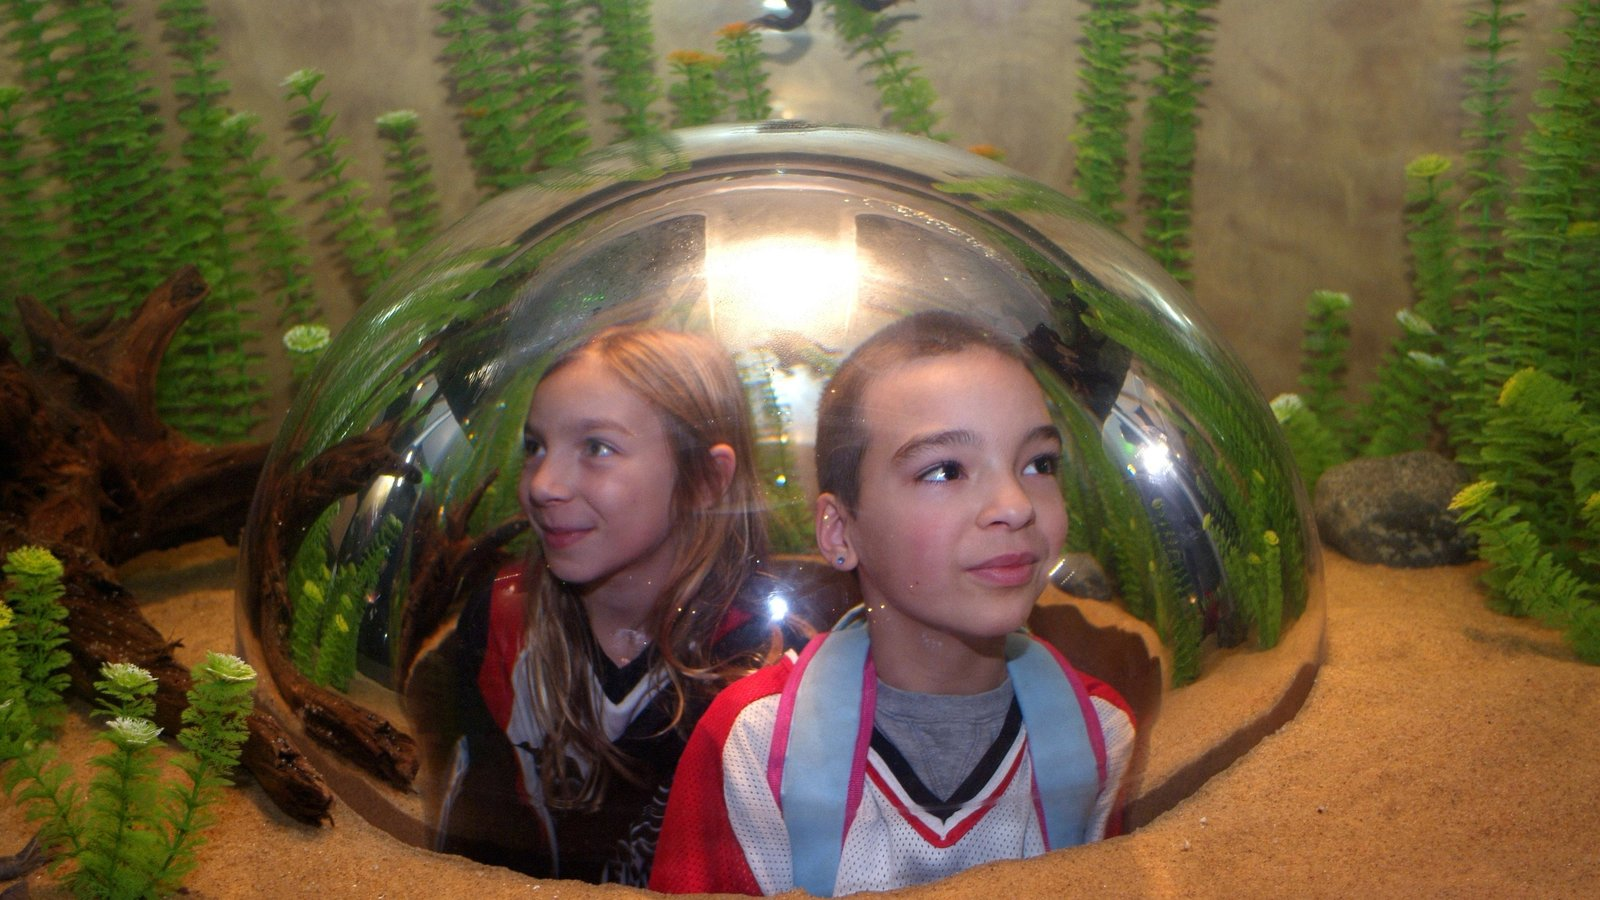 Vancouver Aquarium featuring marine life and interior views as well as children